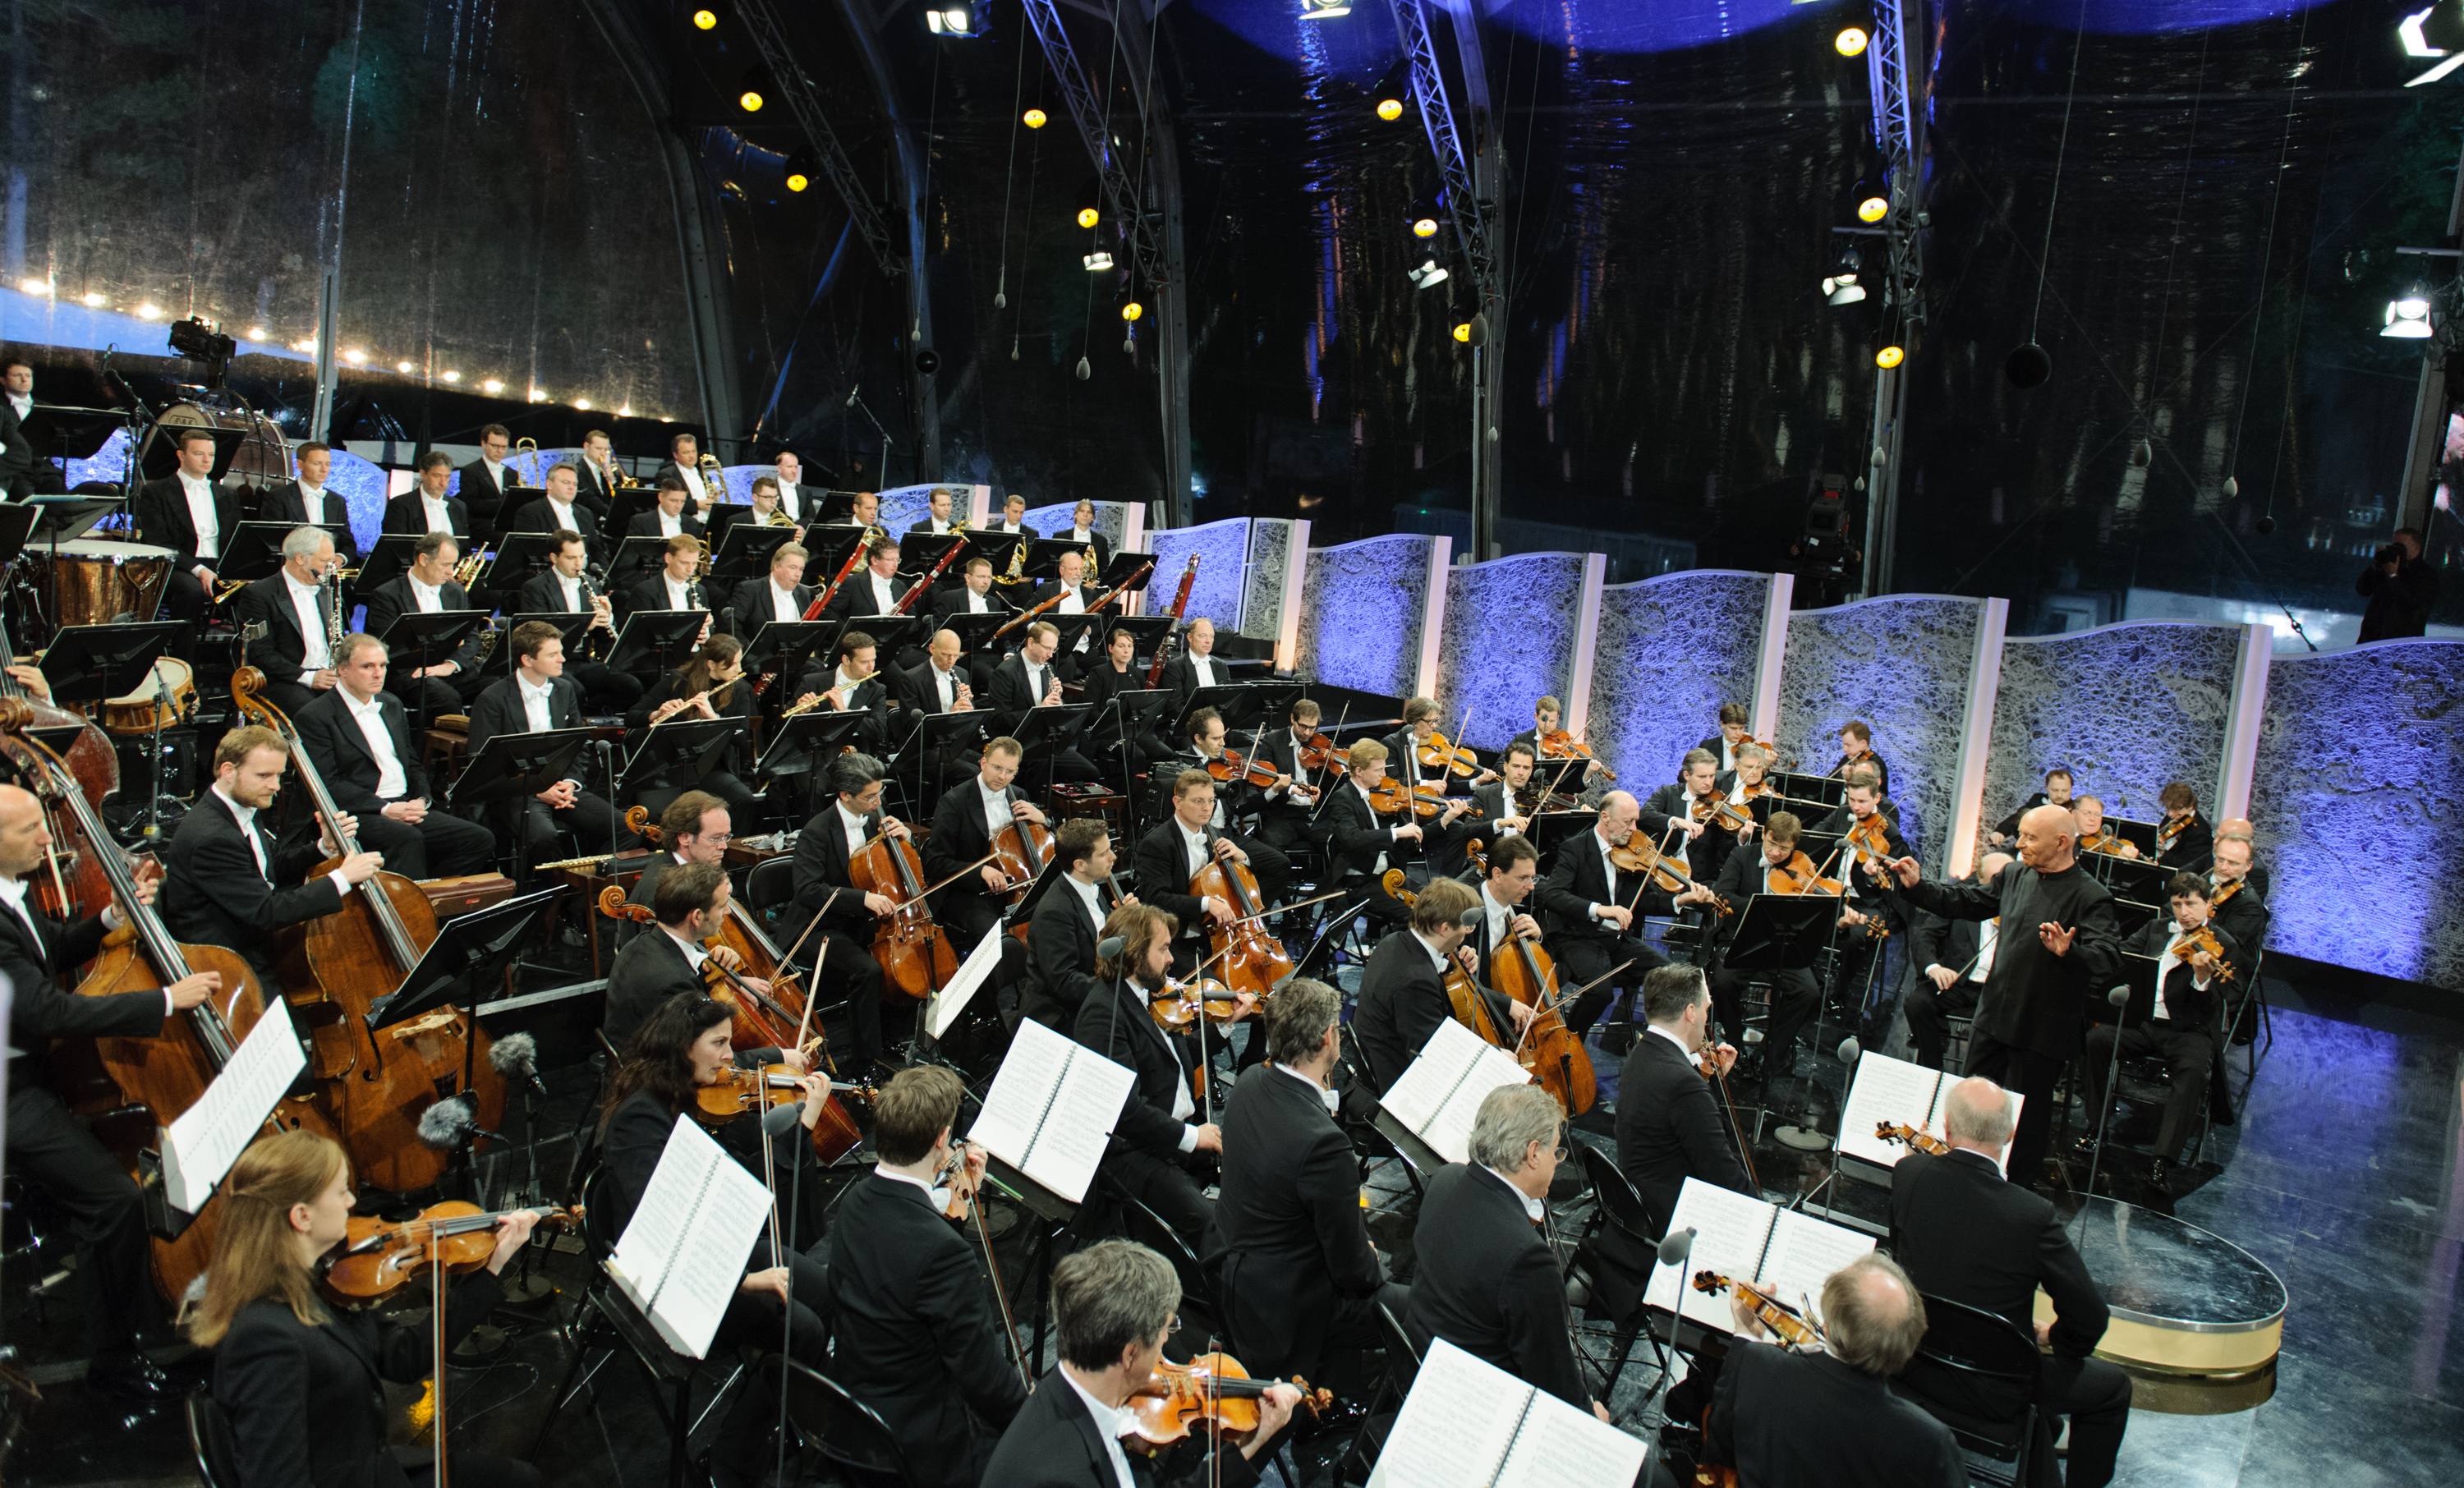 The Vienna Philharmonic Orchestra performing in Austria's Imperial Schonbrunn Palace